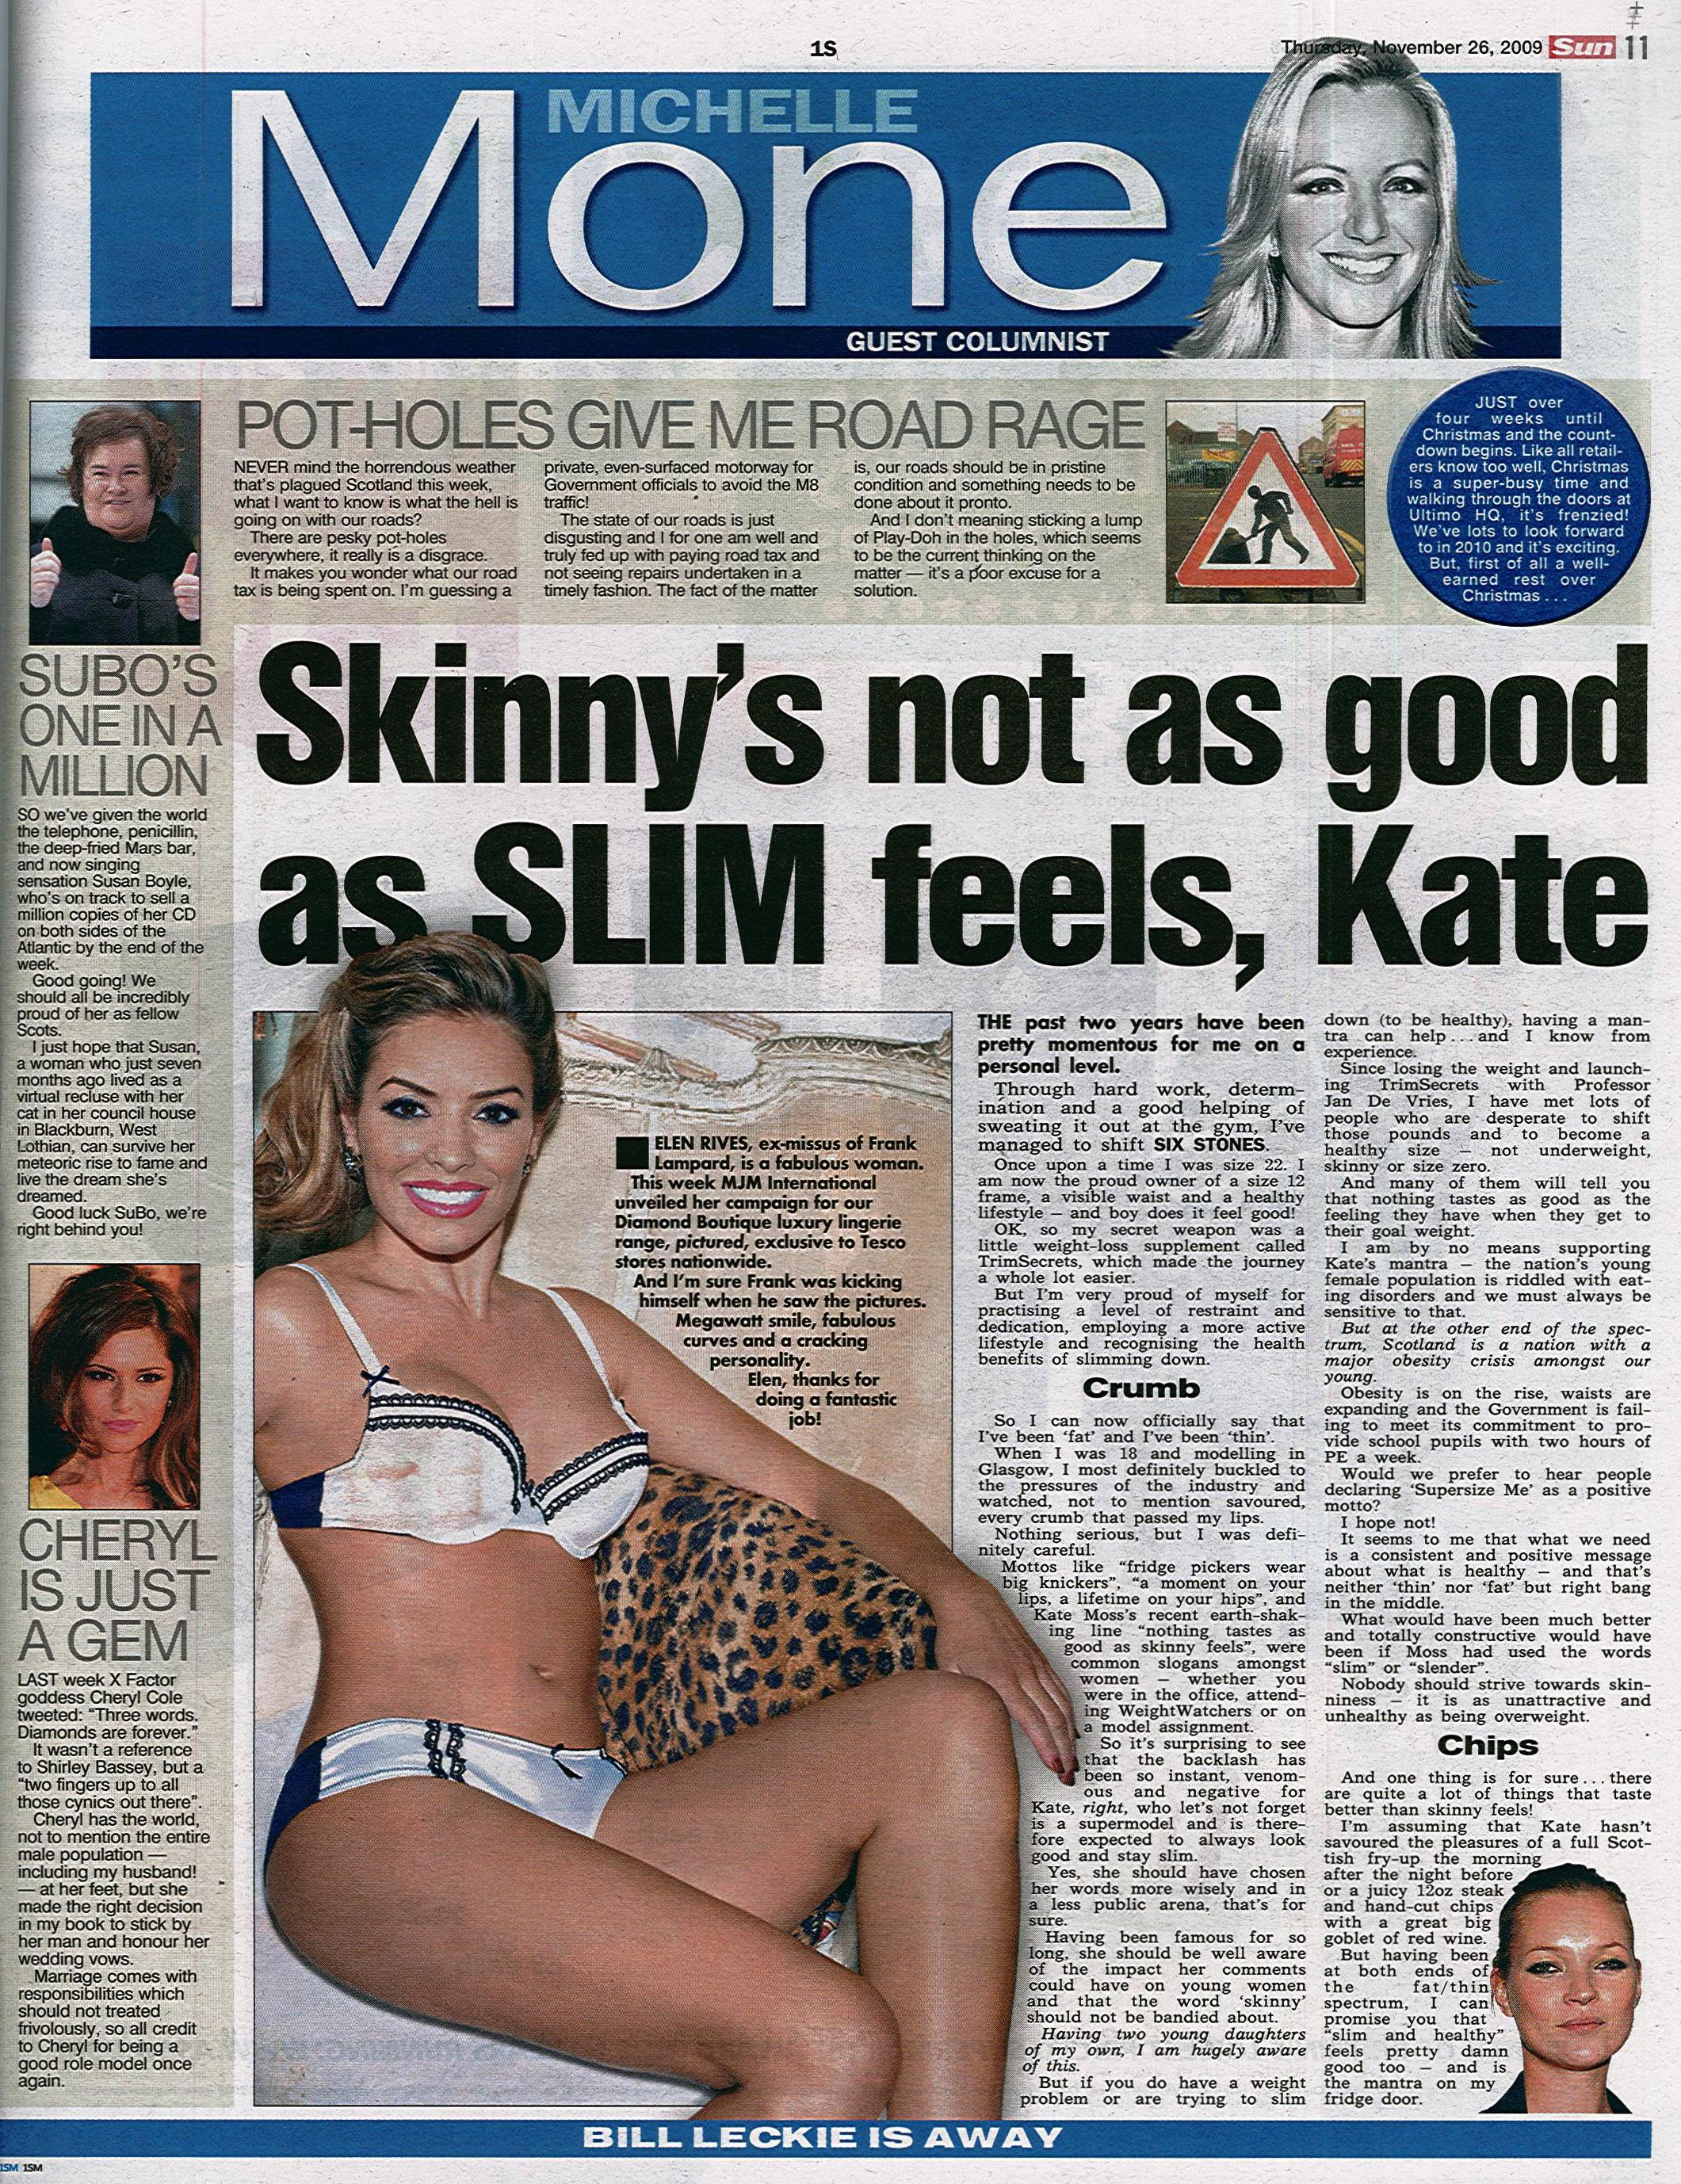 The-Sun_Michelle-Mone-Column-Thu26thNov09